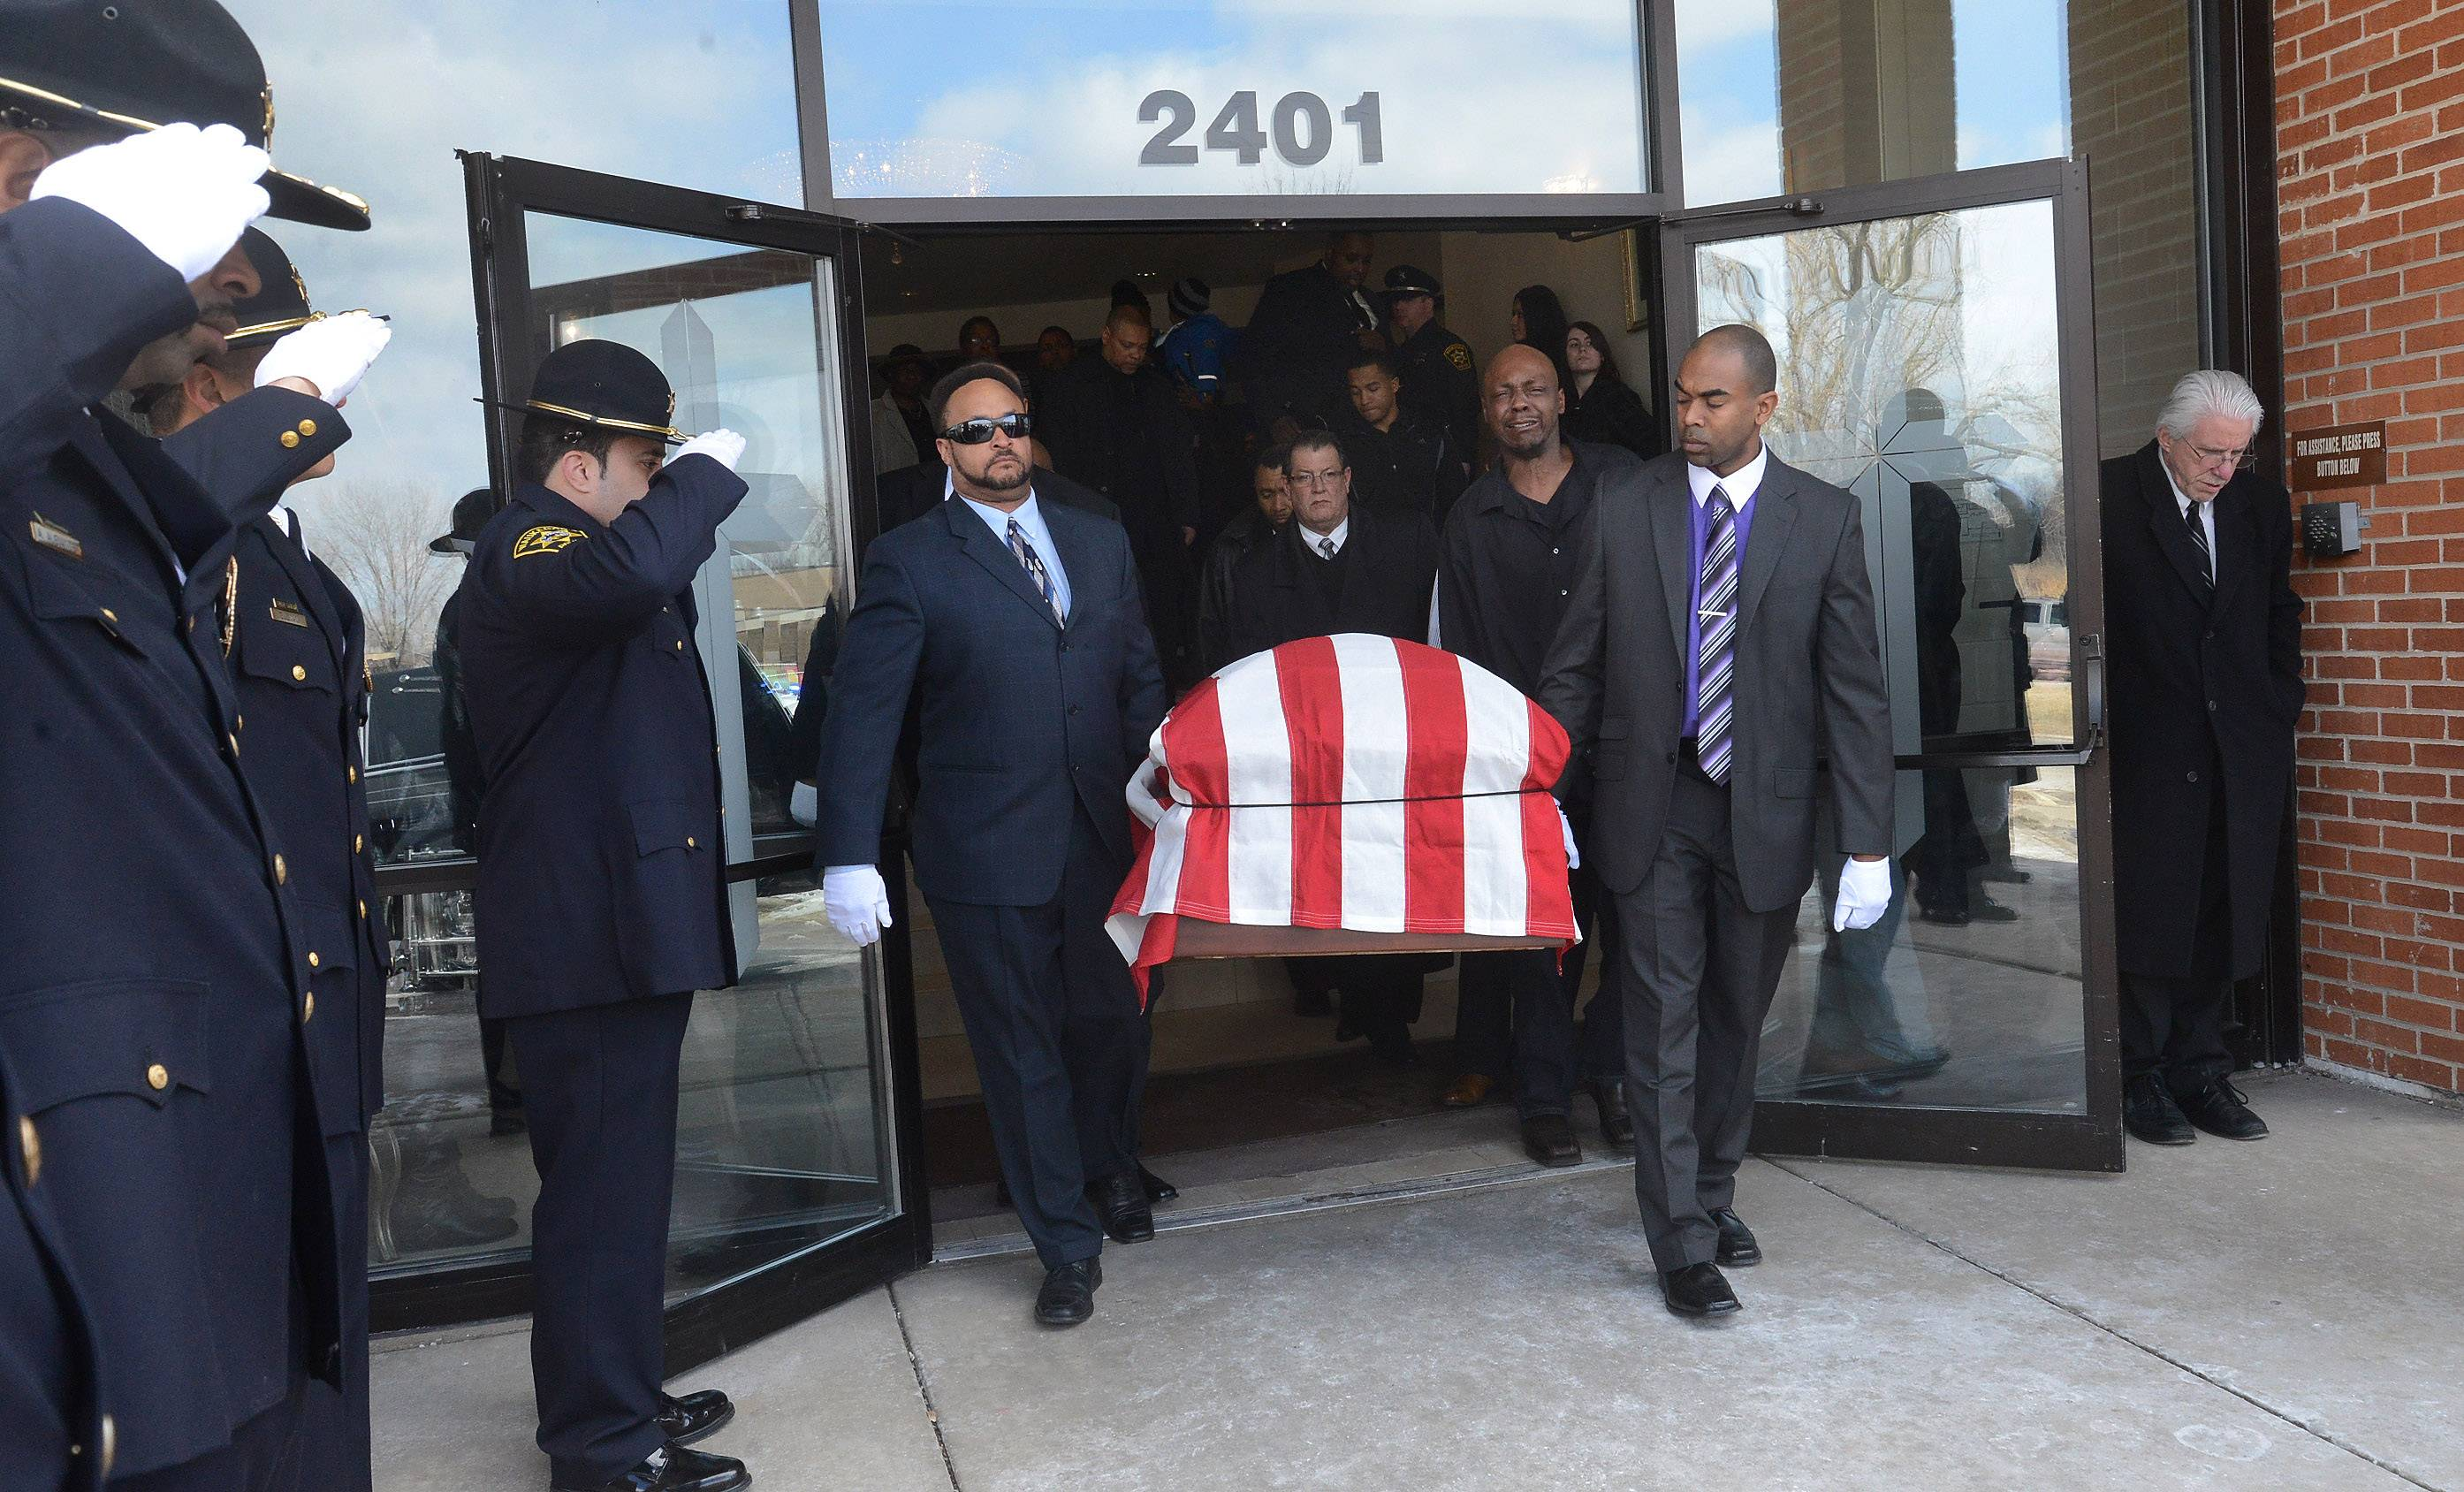 Pallbearers carry the casket of former Lake County coroner and Waukegan police chief Artis Yancey out of Mt. Sinai Institutional Baptist Church in North Chicago Tuesday afternoon. Yancey most recently served as Waukegan's city clerk.